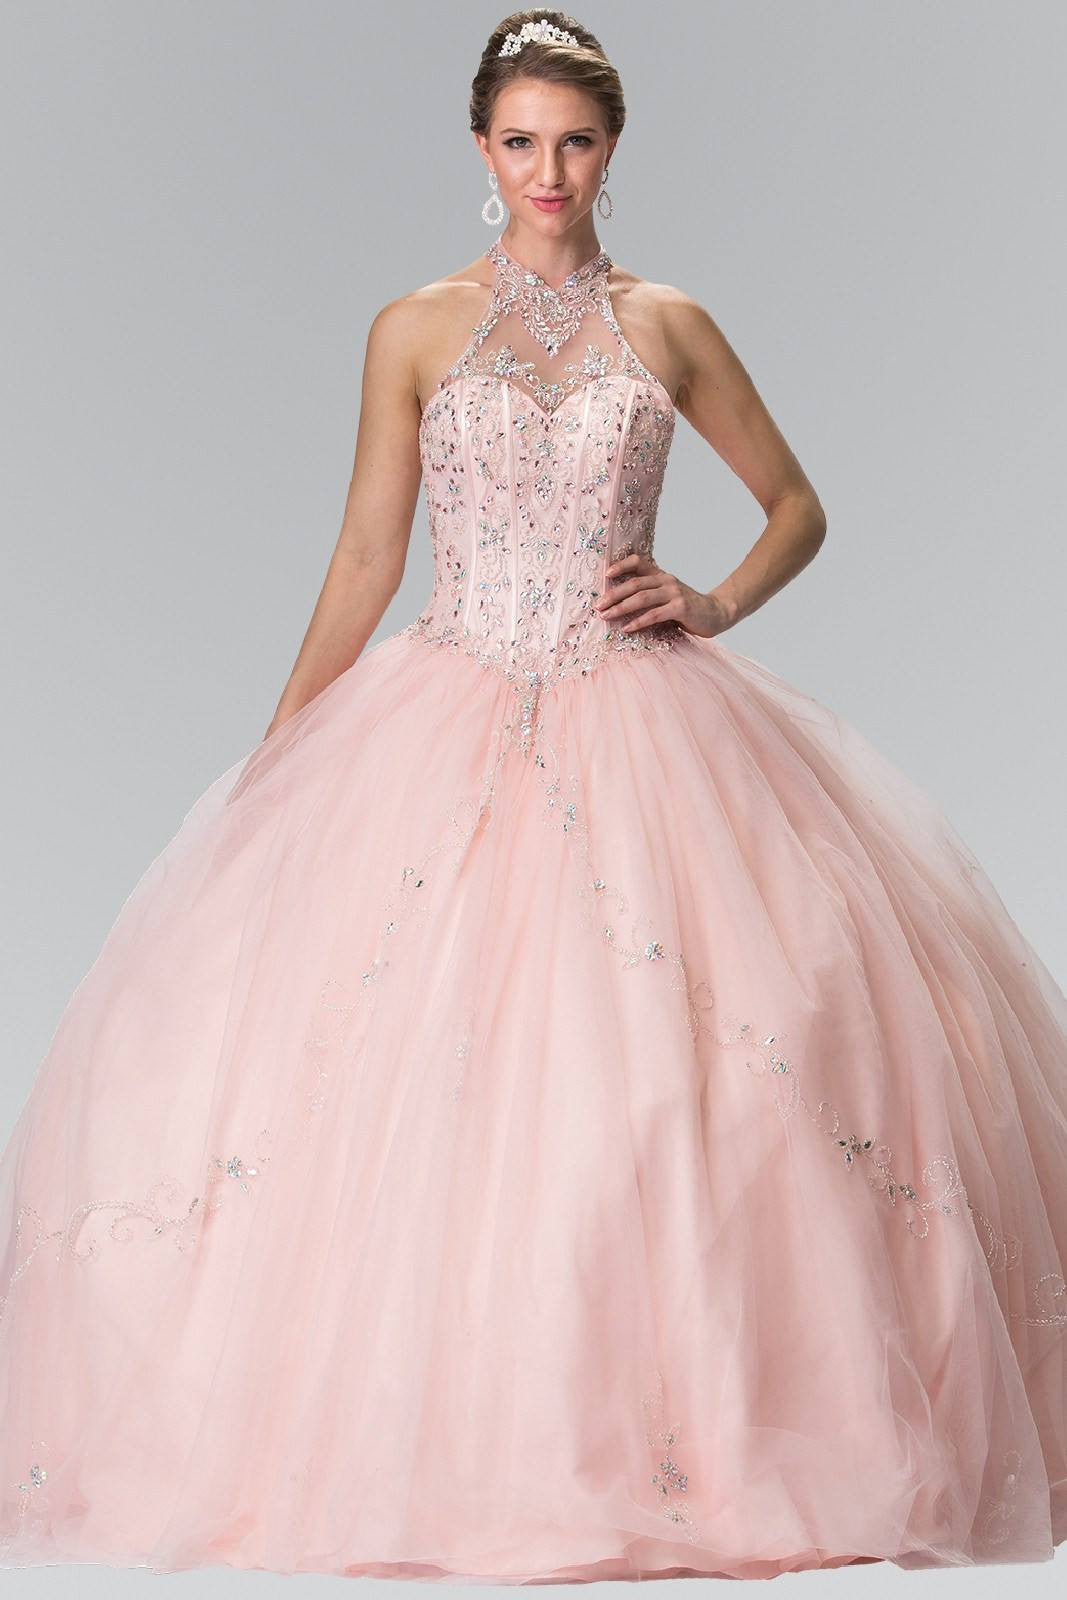 0a6eb3249f2 Cheap Ball gown prom dress Quinceanera sweet 16 dress gl2348Bl - Simply Fab  Dress ...